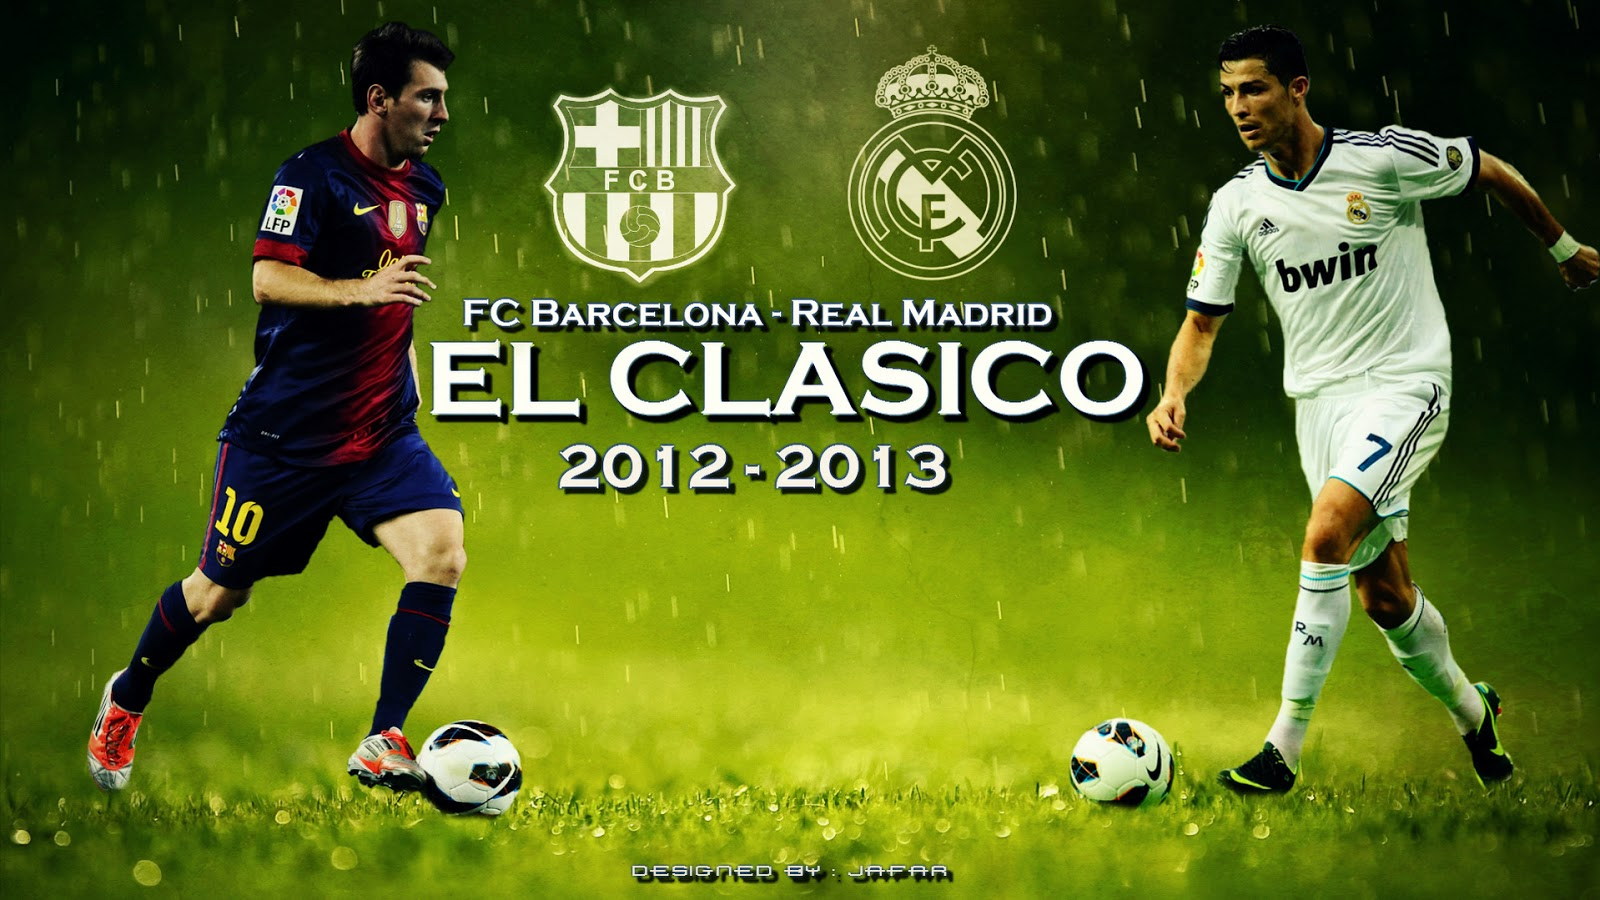 Best HD Wallpaper about El Clasico 2013 Barcelona FC Vs Real Madrid